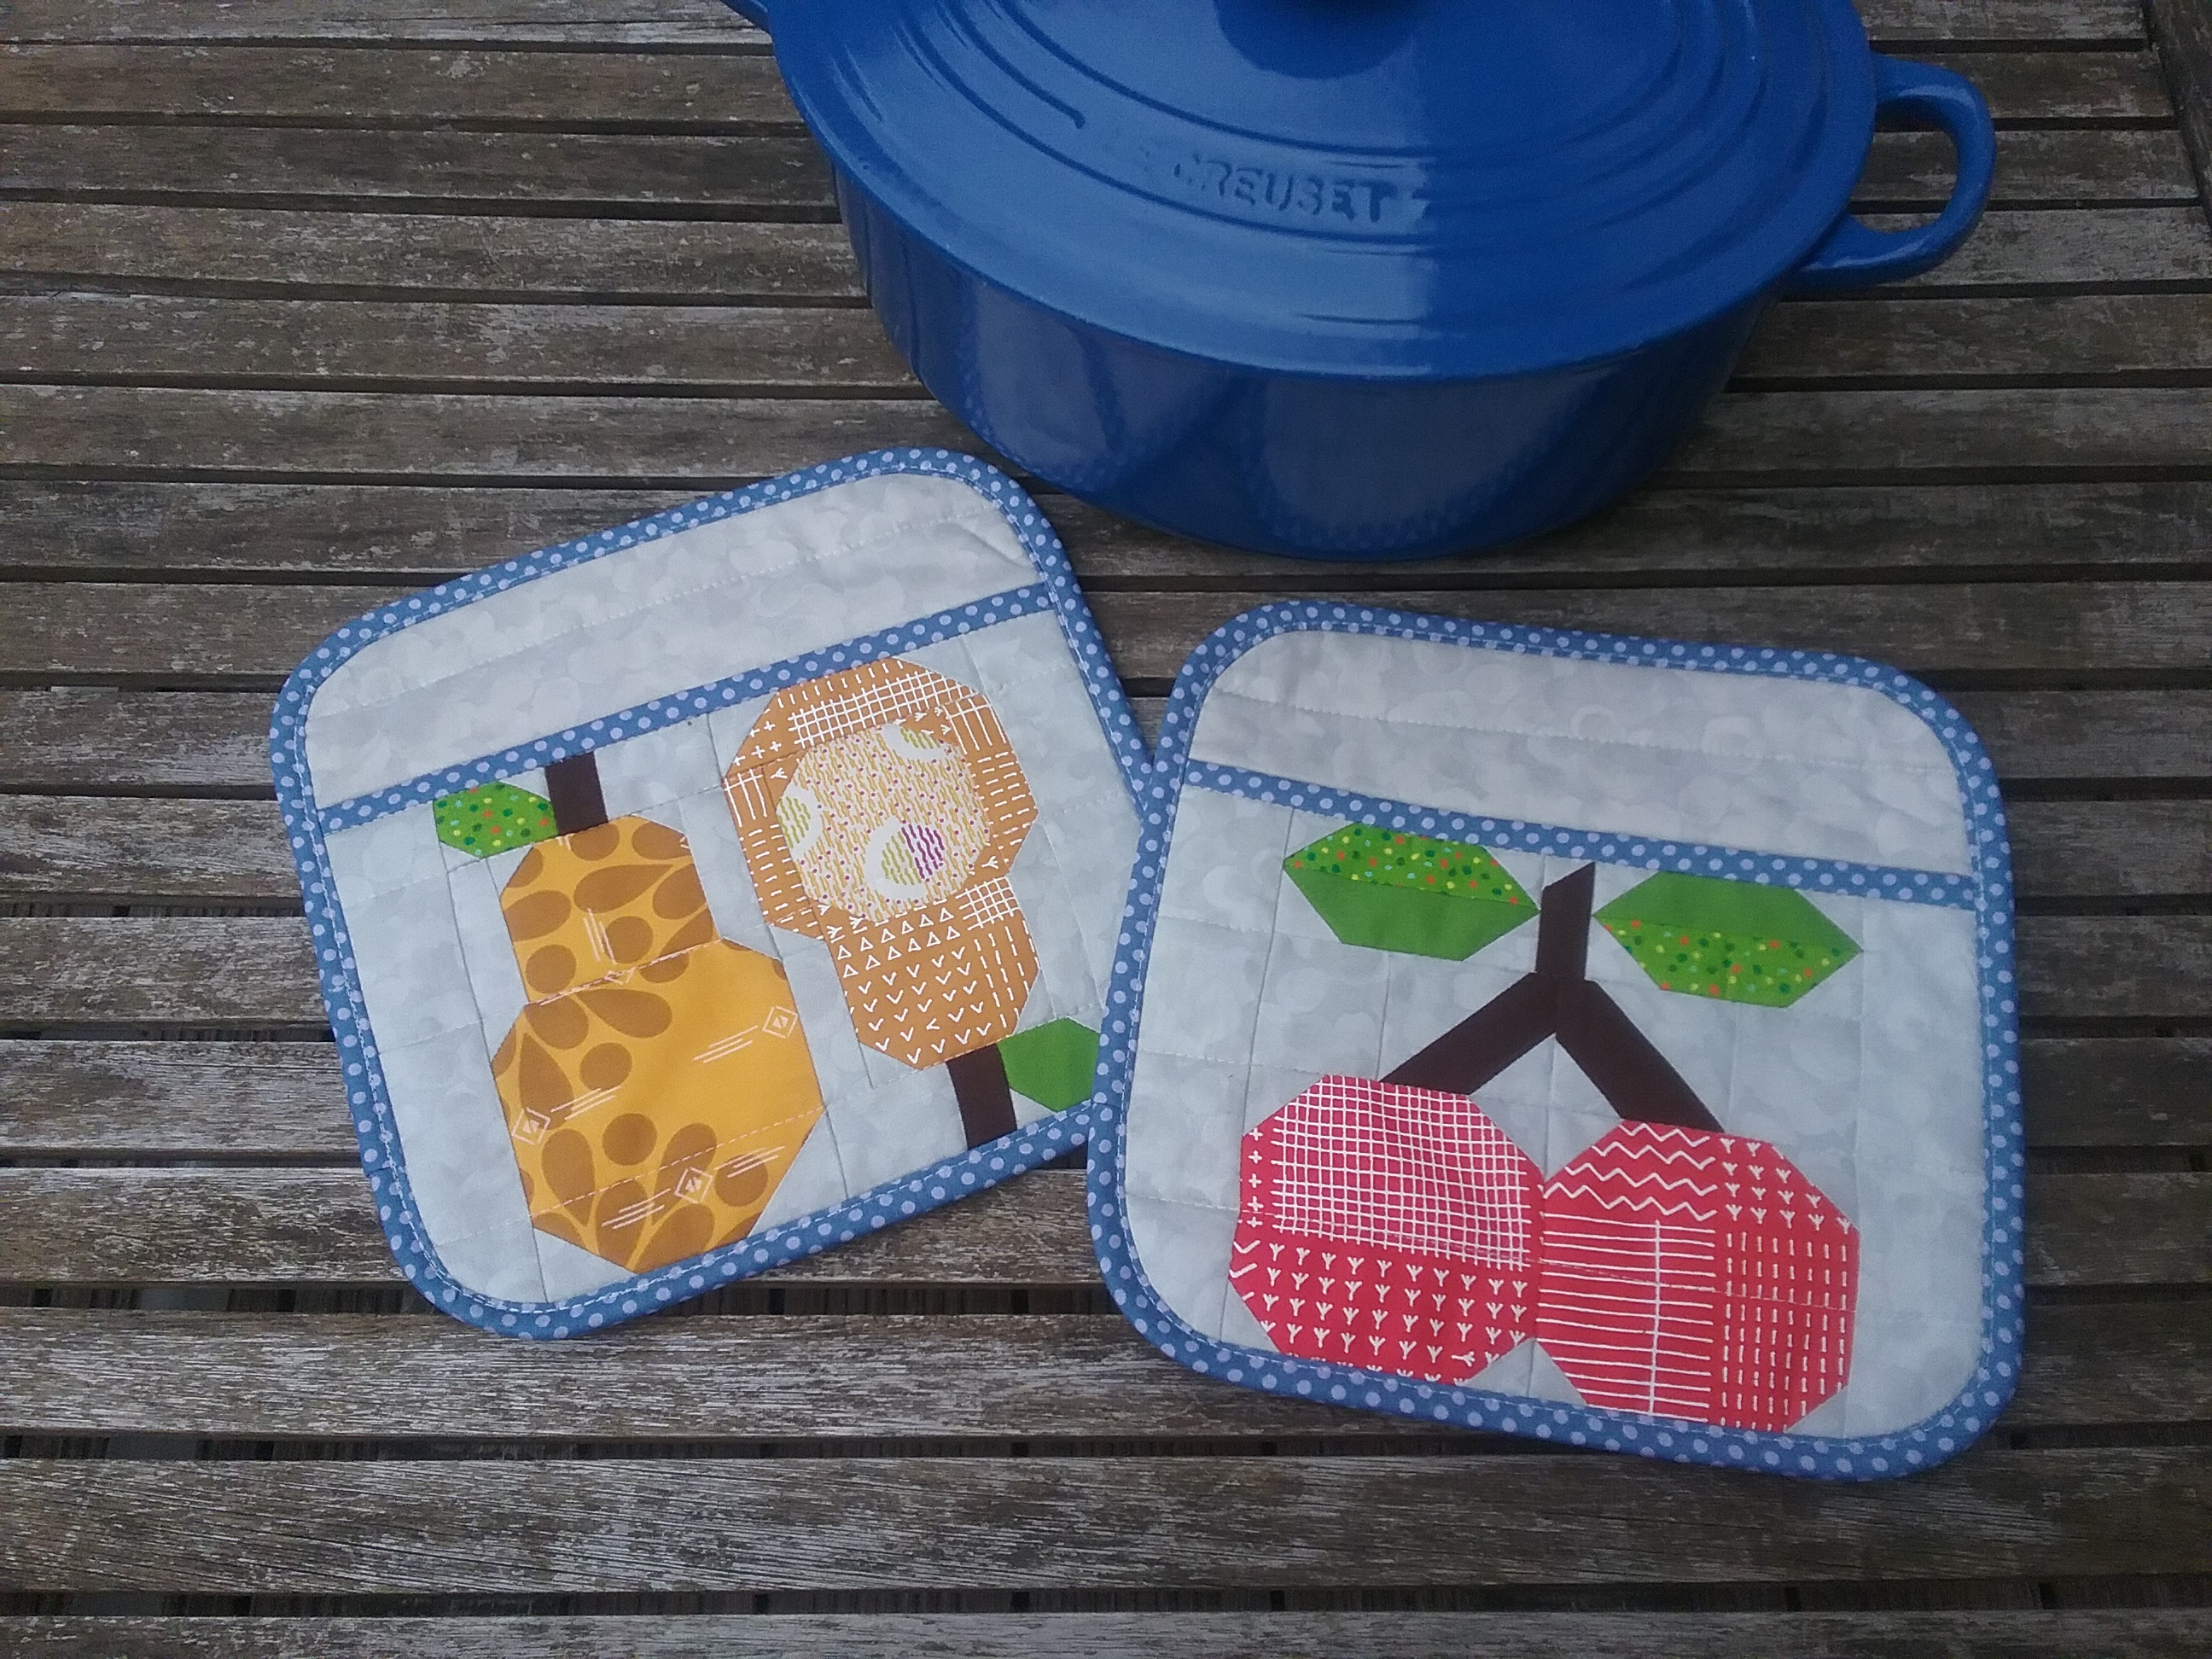 Flower City Potholder Set | Kitchen Gifts | Farm Girl Vintage Quilt Blocks | Paper Pieced | Radiant Home Studio